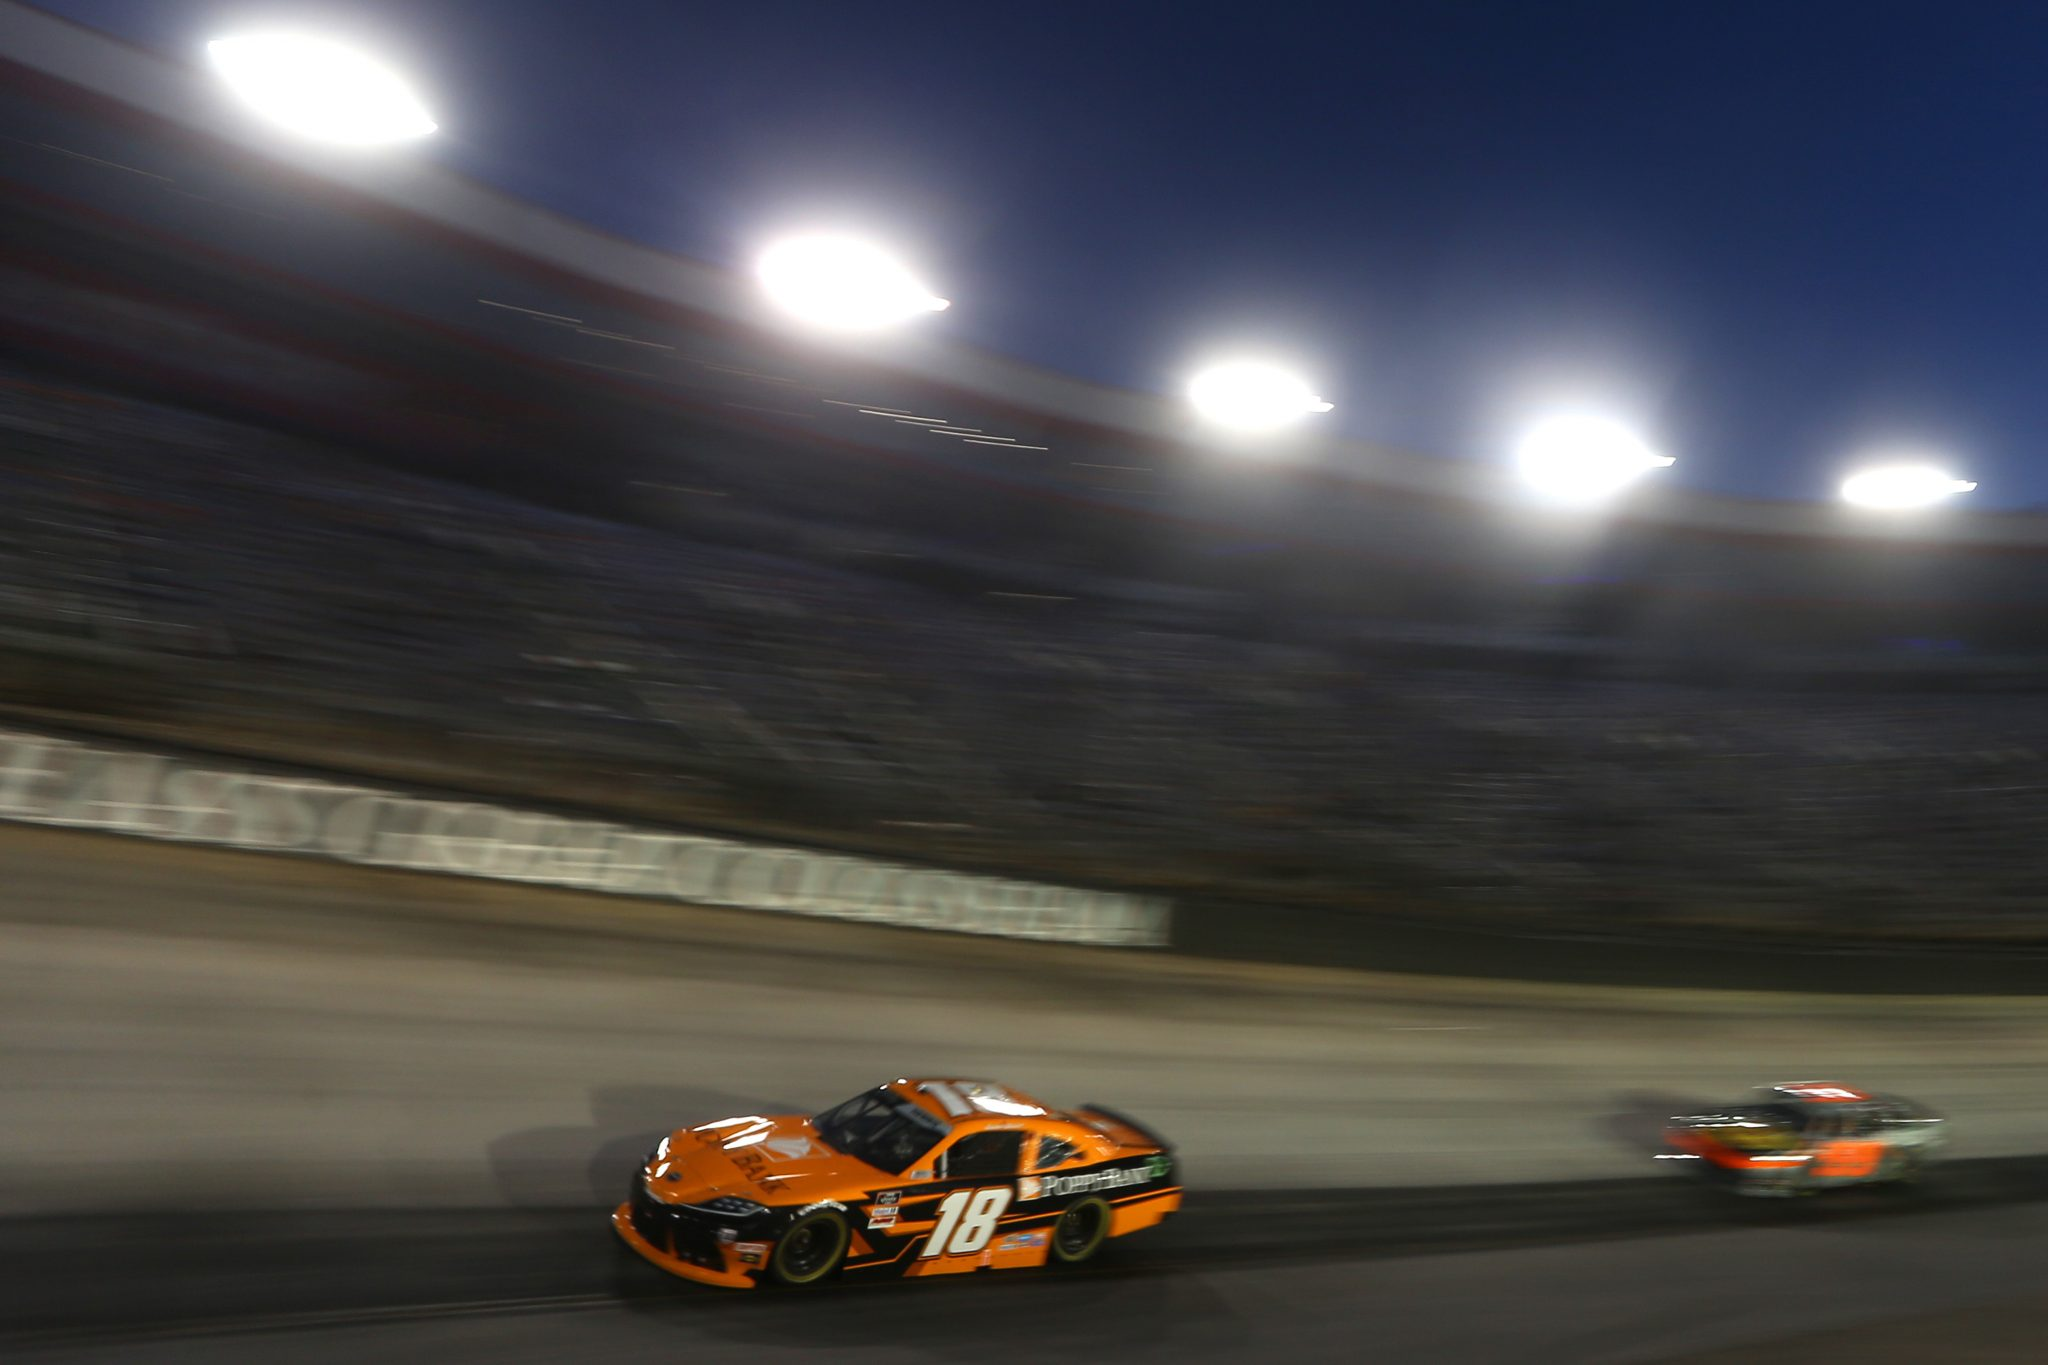 BRISTOL, TENNESSEE - SEPTEMBER 17: Daniel Hemric, driver of the #18 Poppy Bank Toyota, drives during the NASCAR Xfinity Series Food City 300 at Bristol Motor Speedway on September 17, 2021 in Bristol, Tennessee. (Photo by Brian Lawdermilk/Getty Images) | Getty Images